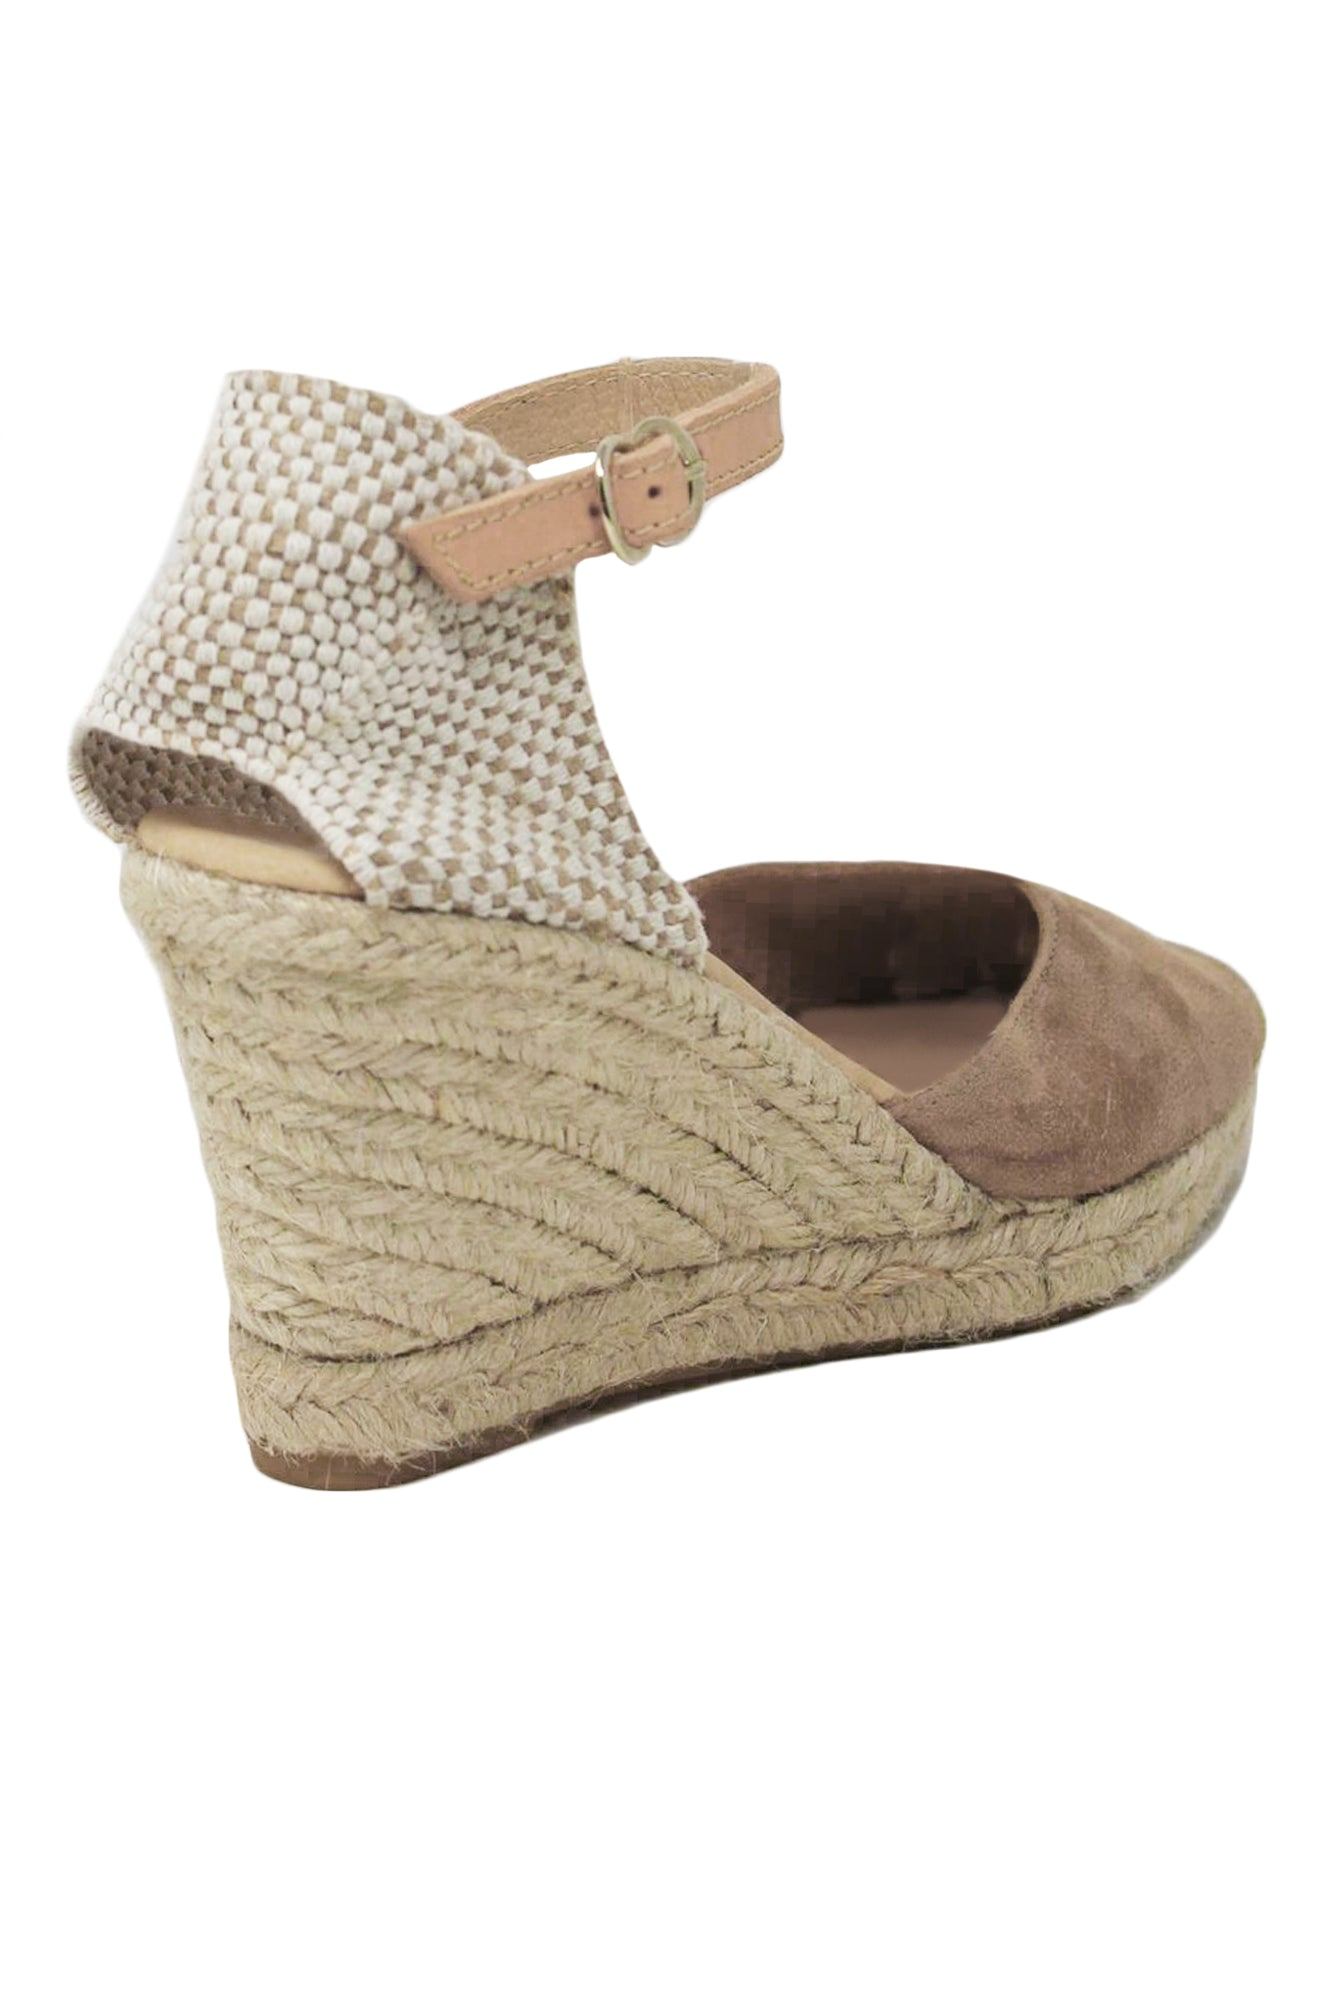 8727f1ddf07 Nantes Leather Wedge Espadrilles Almond